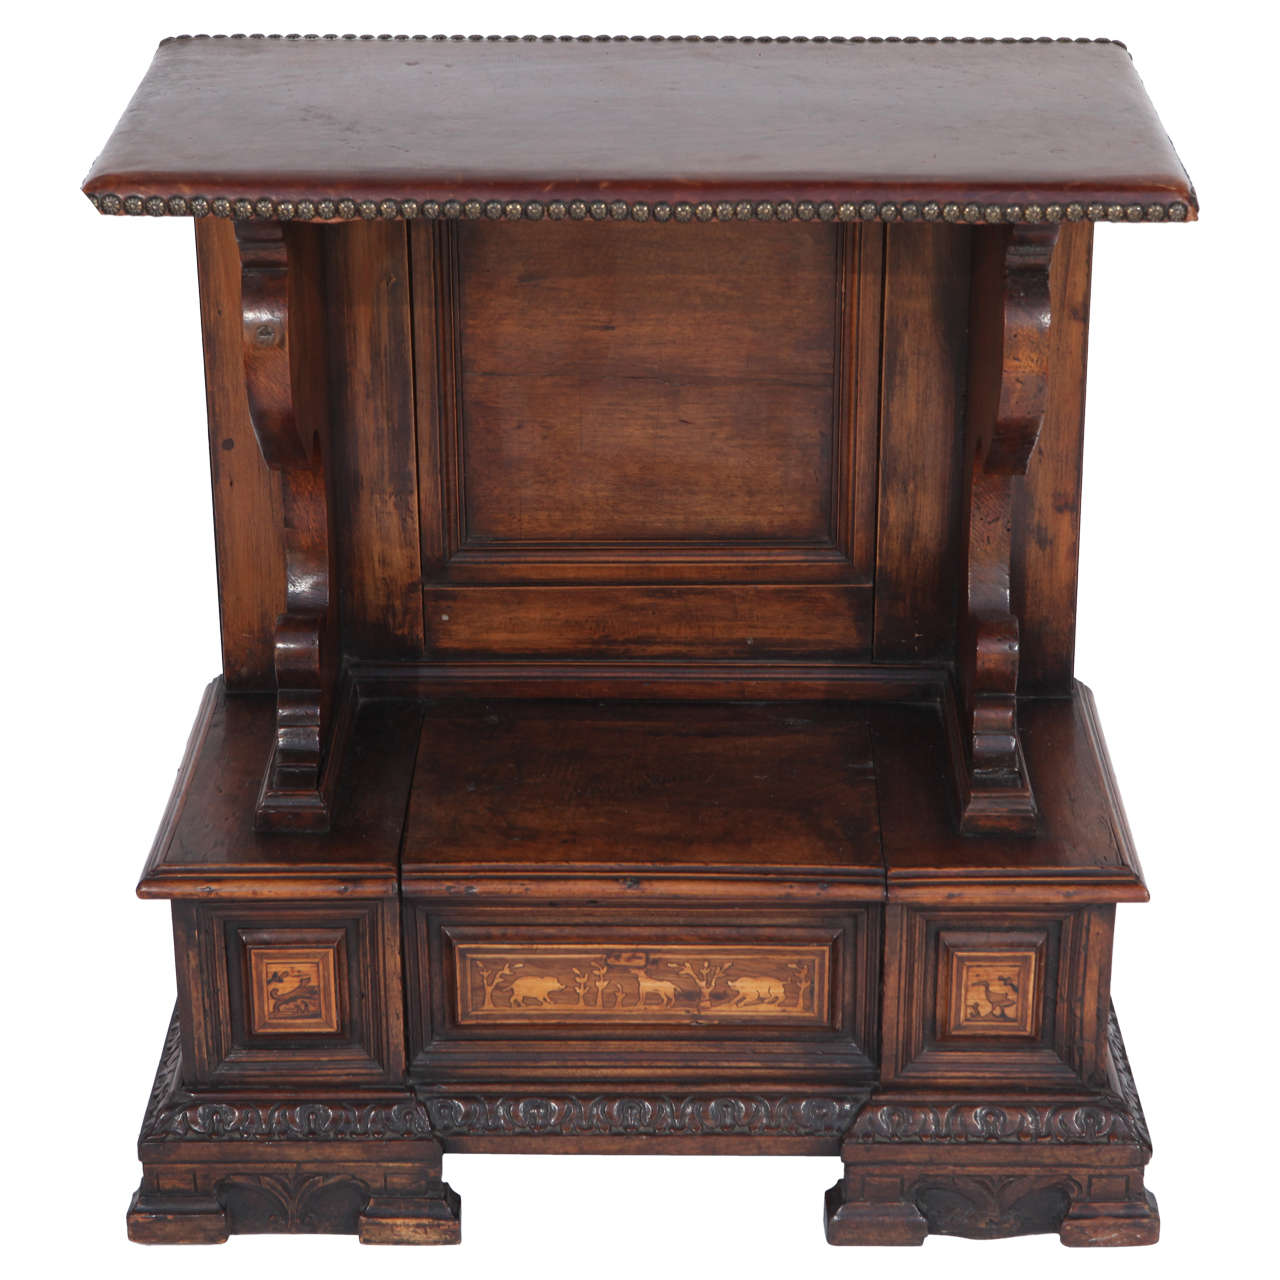 18th Century Italian Inlaid Walnut Cabinet For Sale